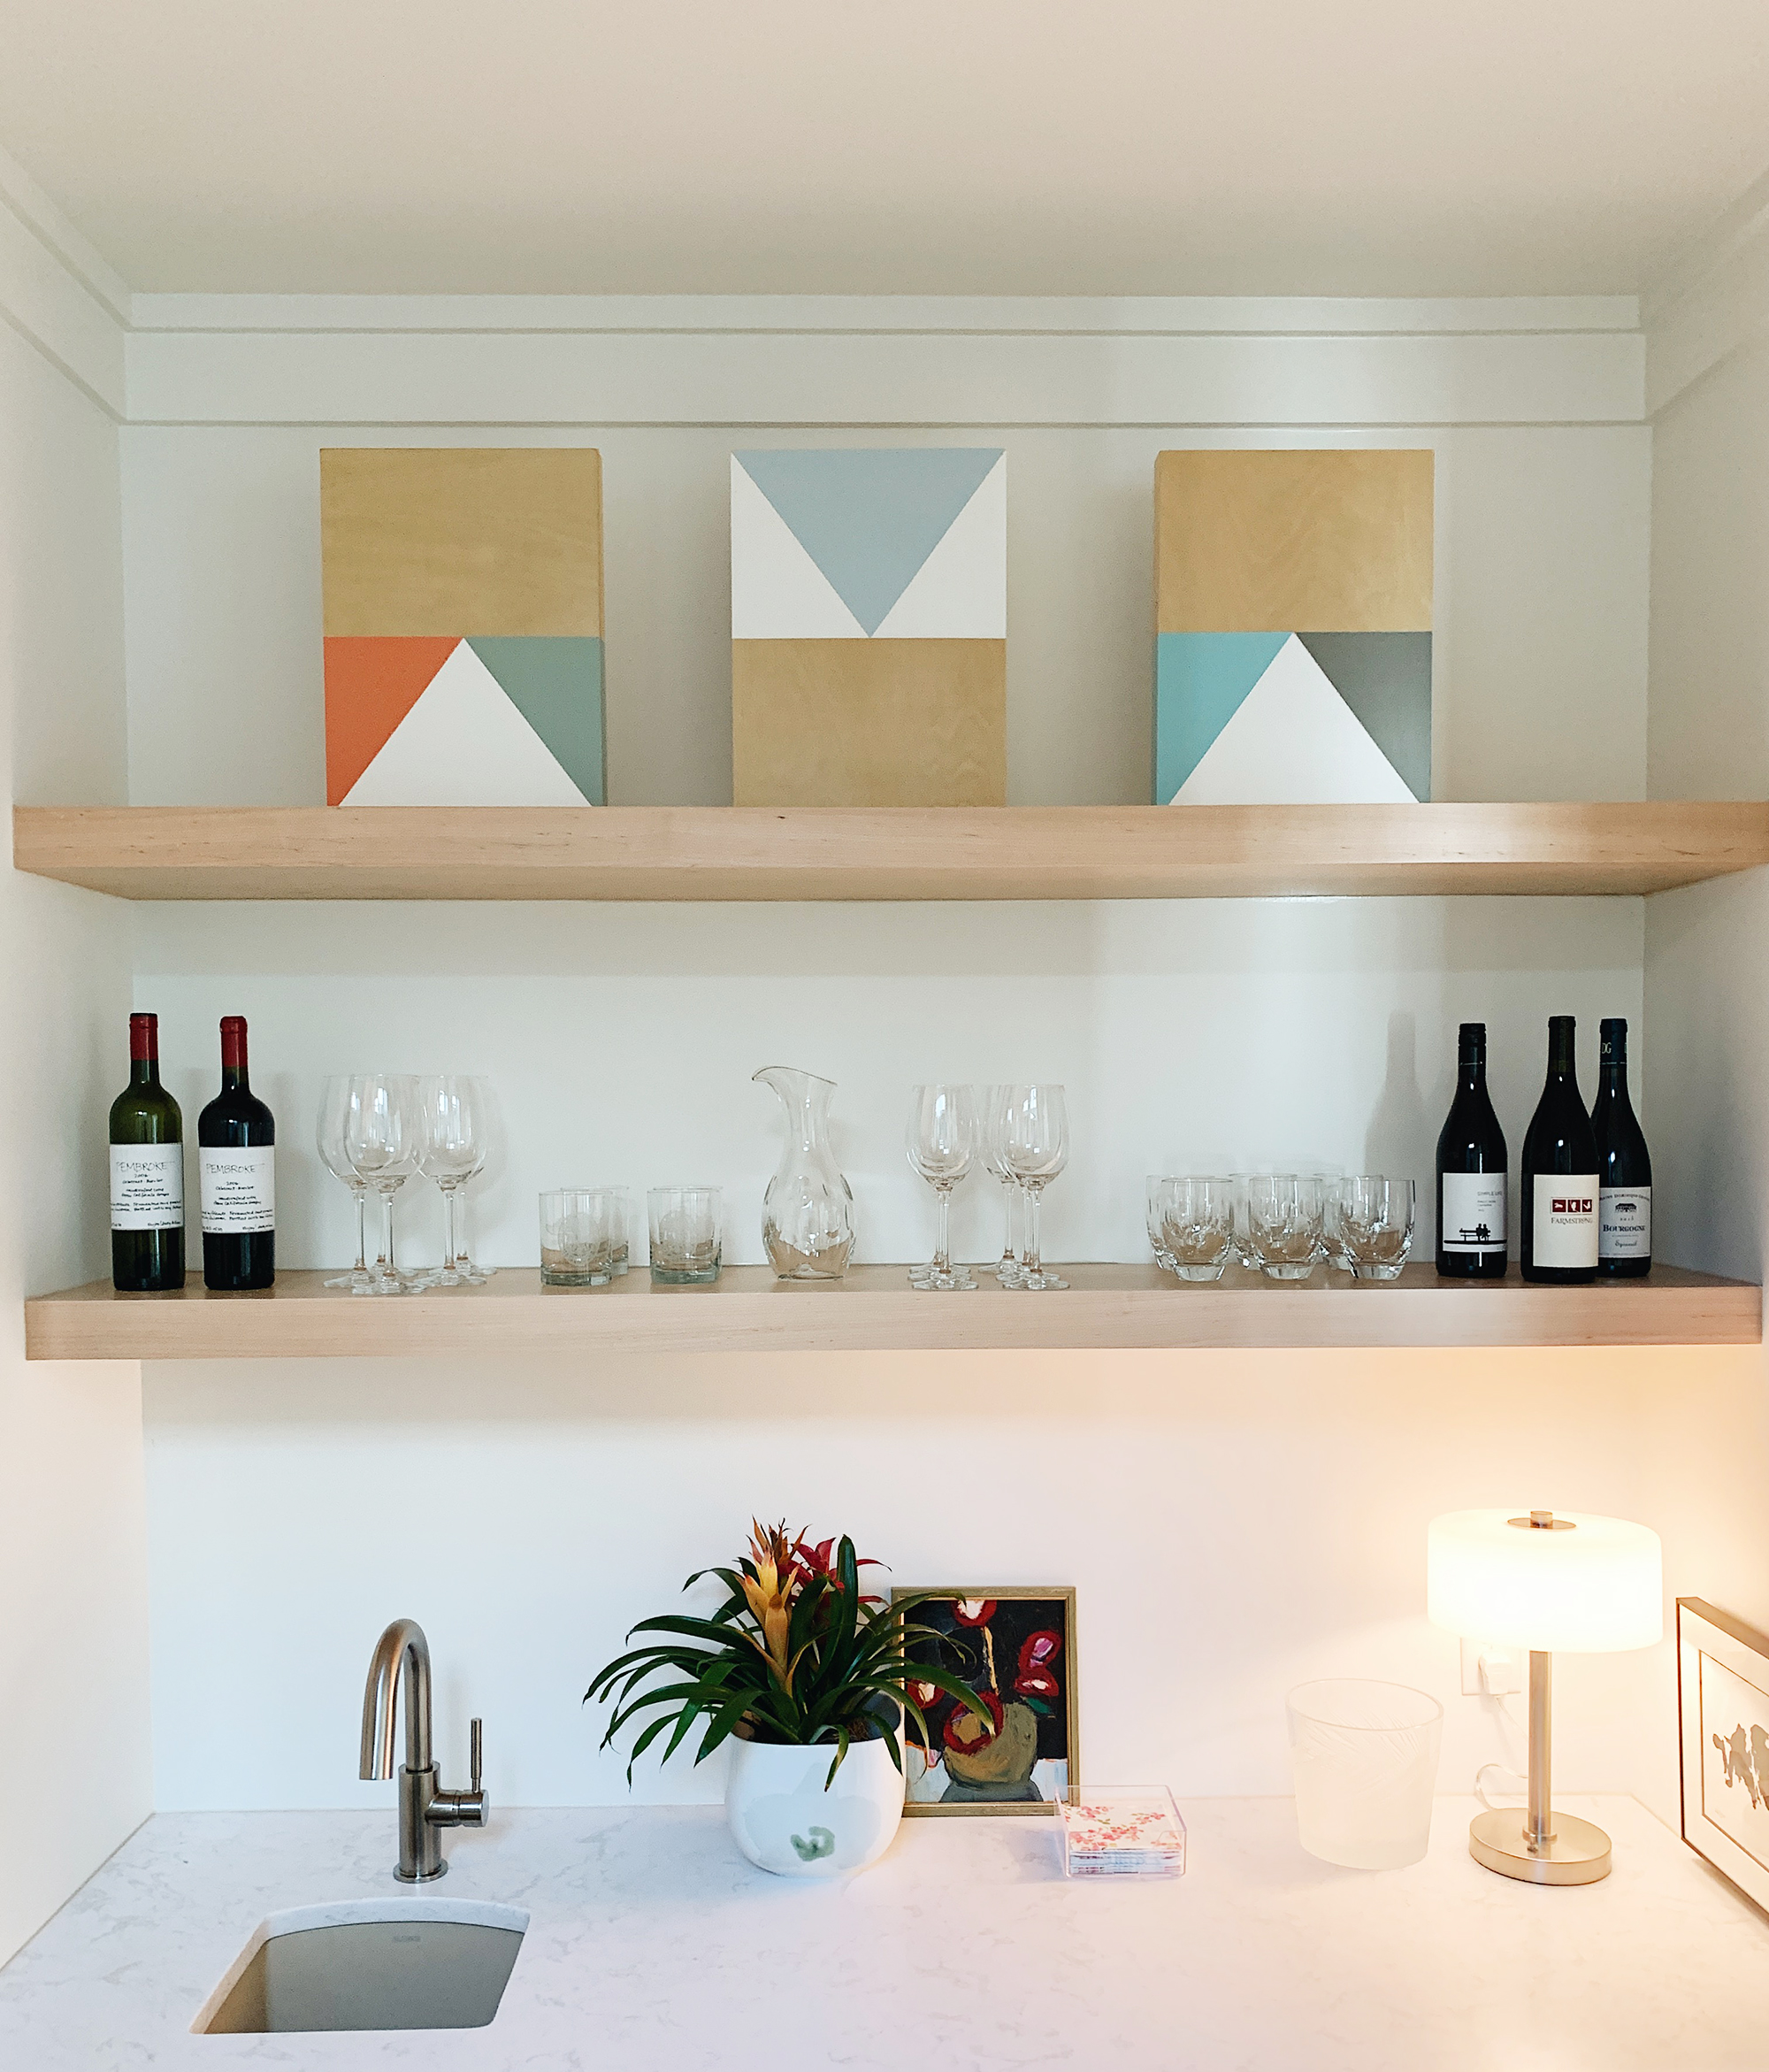 Pieces by Jeffrey Leder create perfect harmony above this wine bar. Below, a small work by Katie Walker brings some rich color to the space.